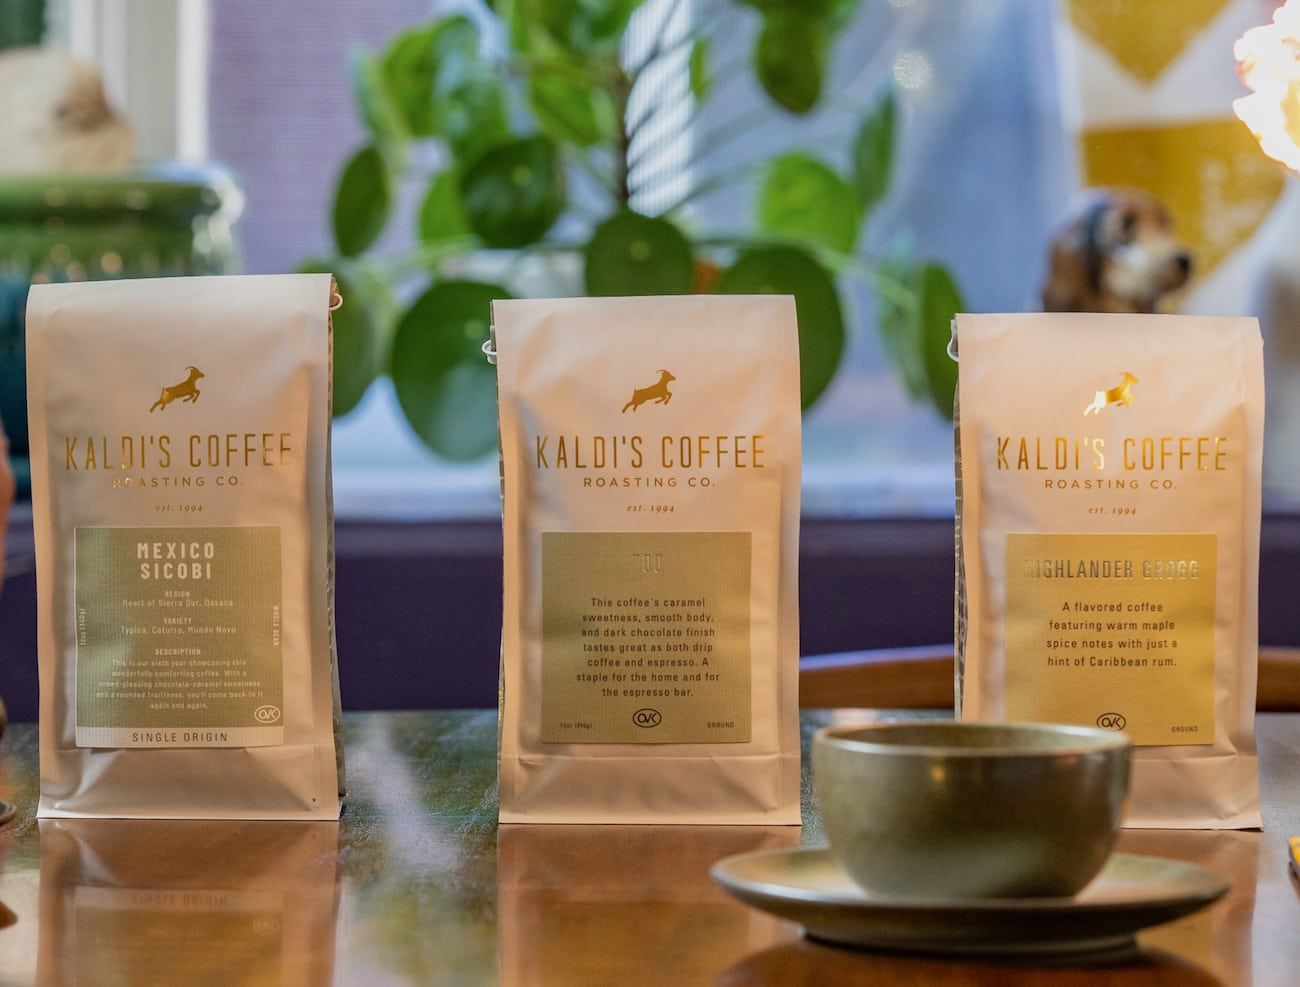 3 bags of Kaldi's Coffee Blends